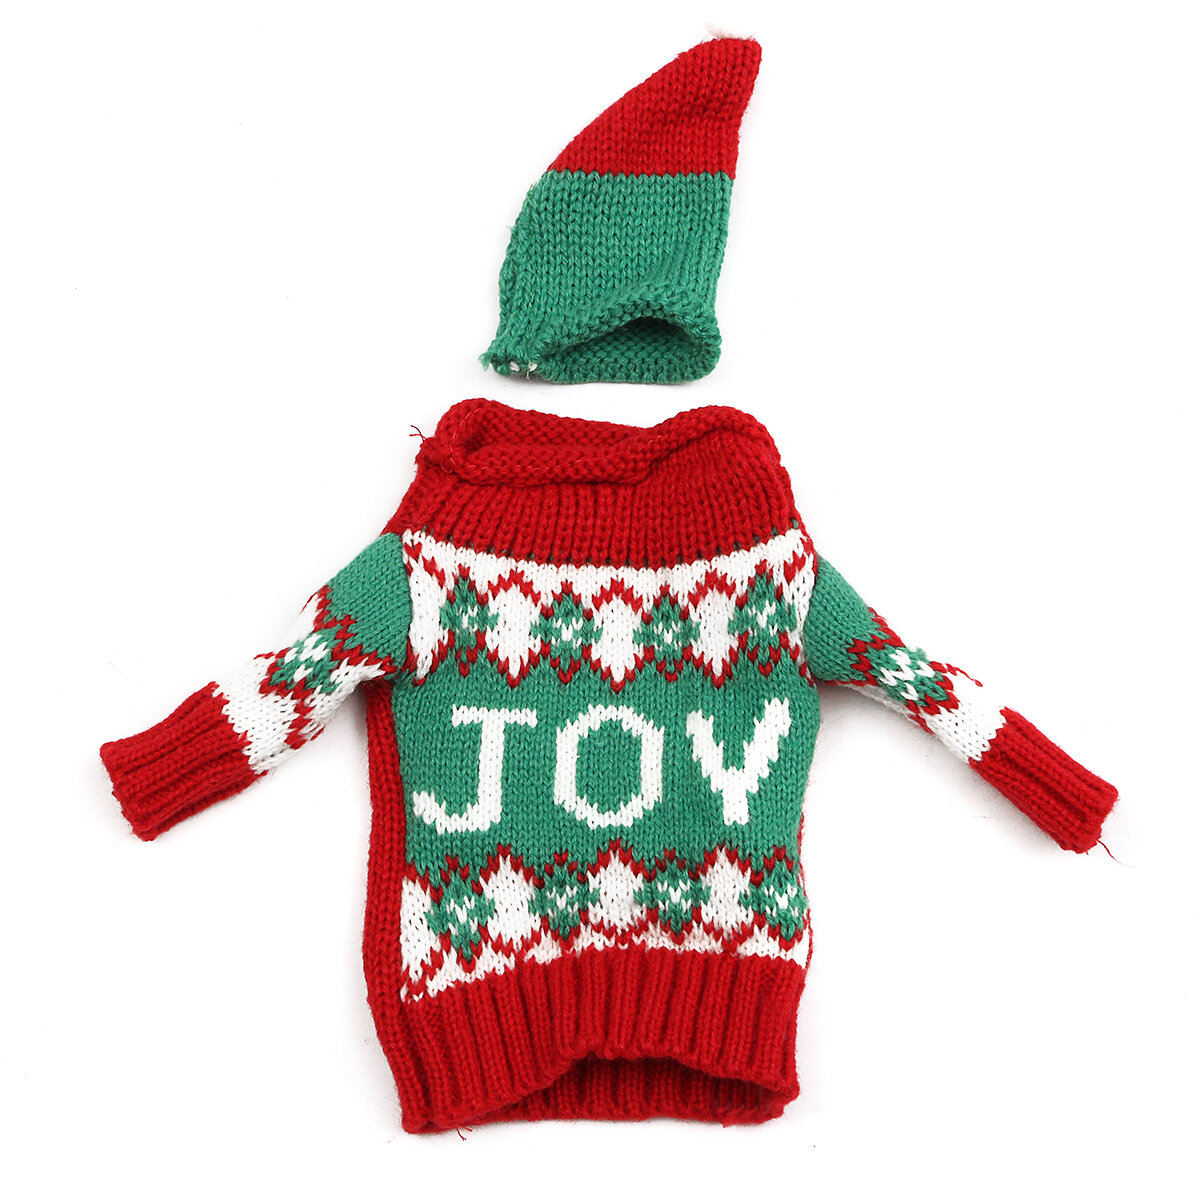 Christmas Knitted Sweater Lid Hat Wine Bottle Cover Wrap Bag Xmas Decoration - 6